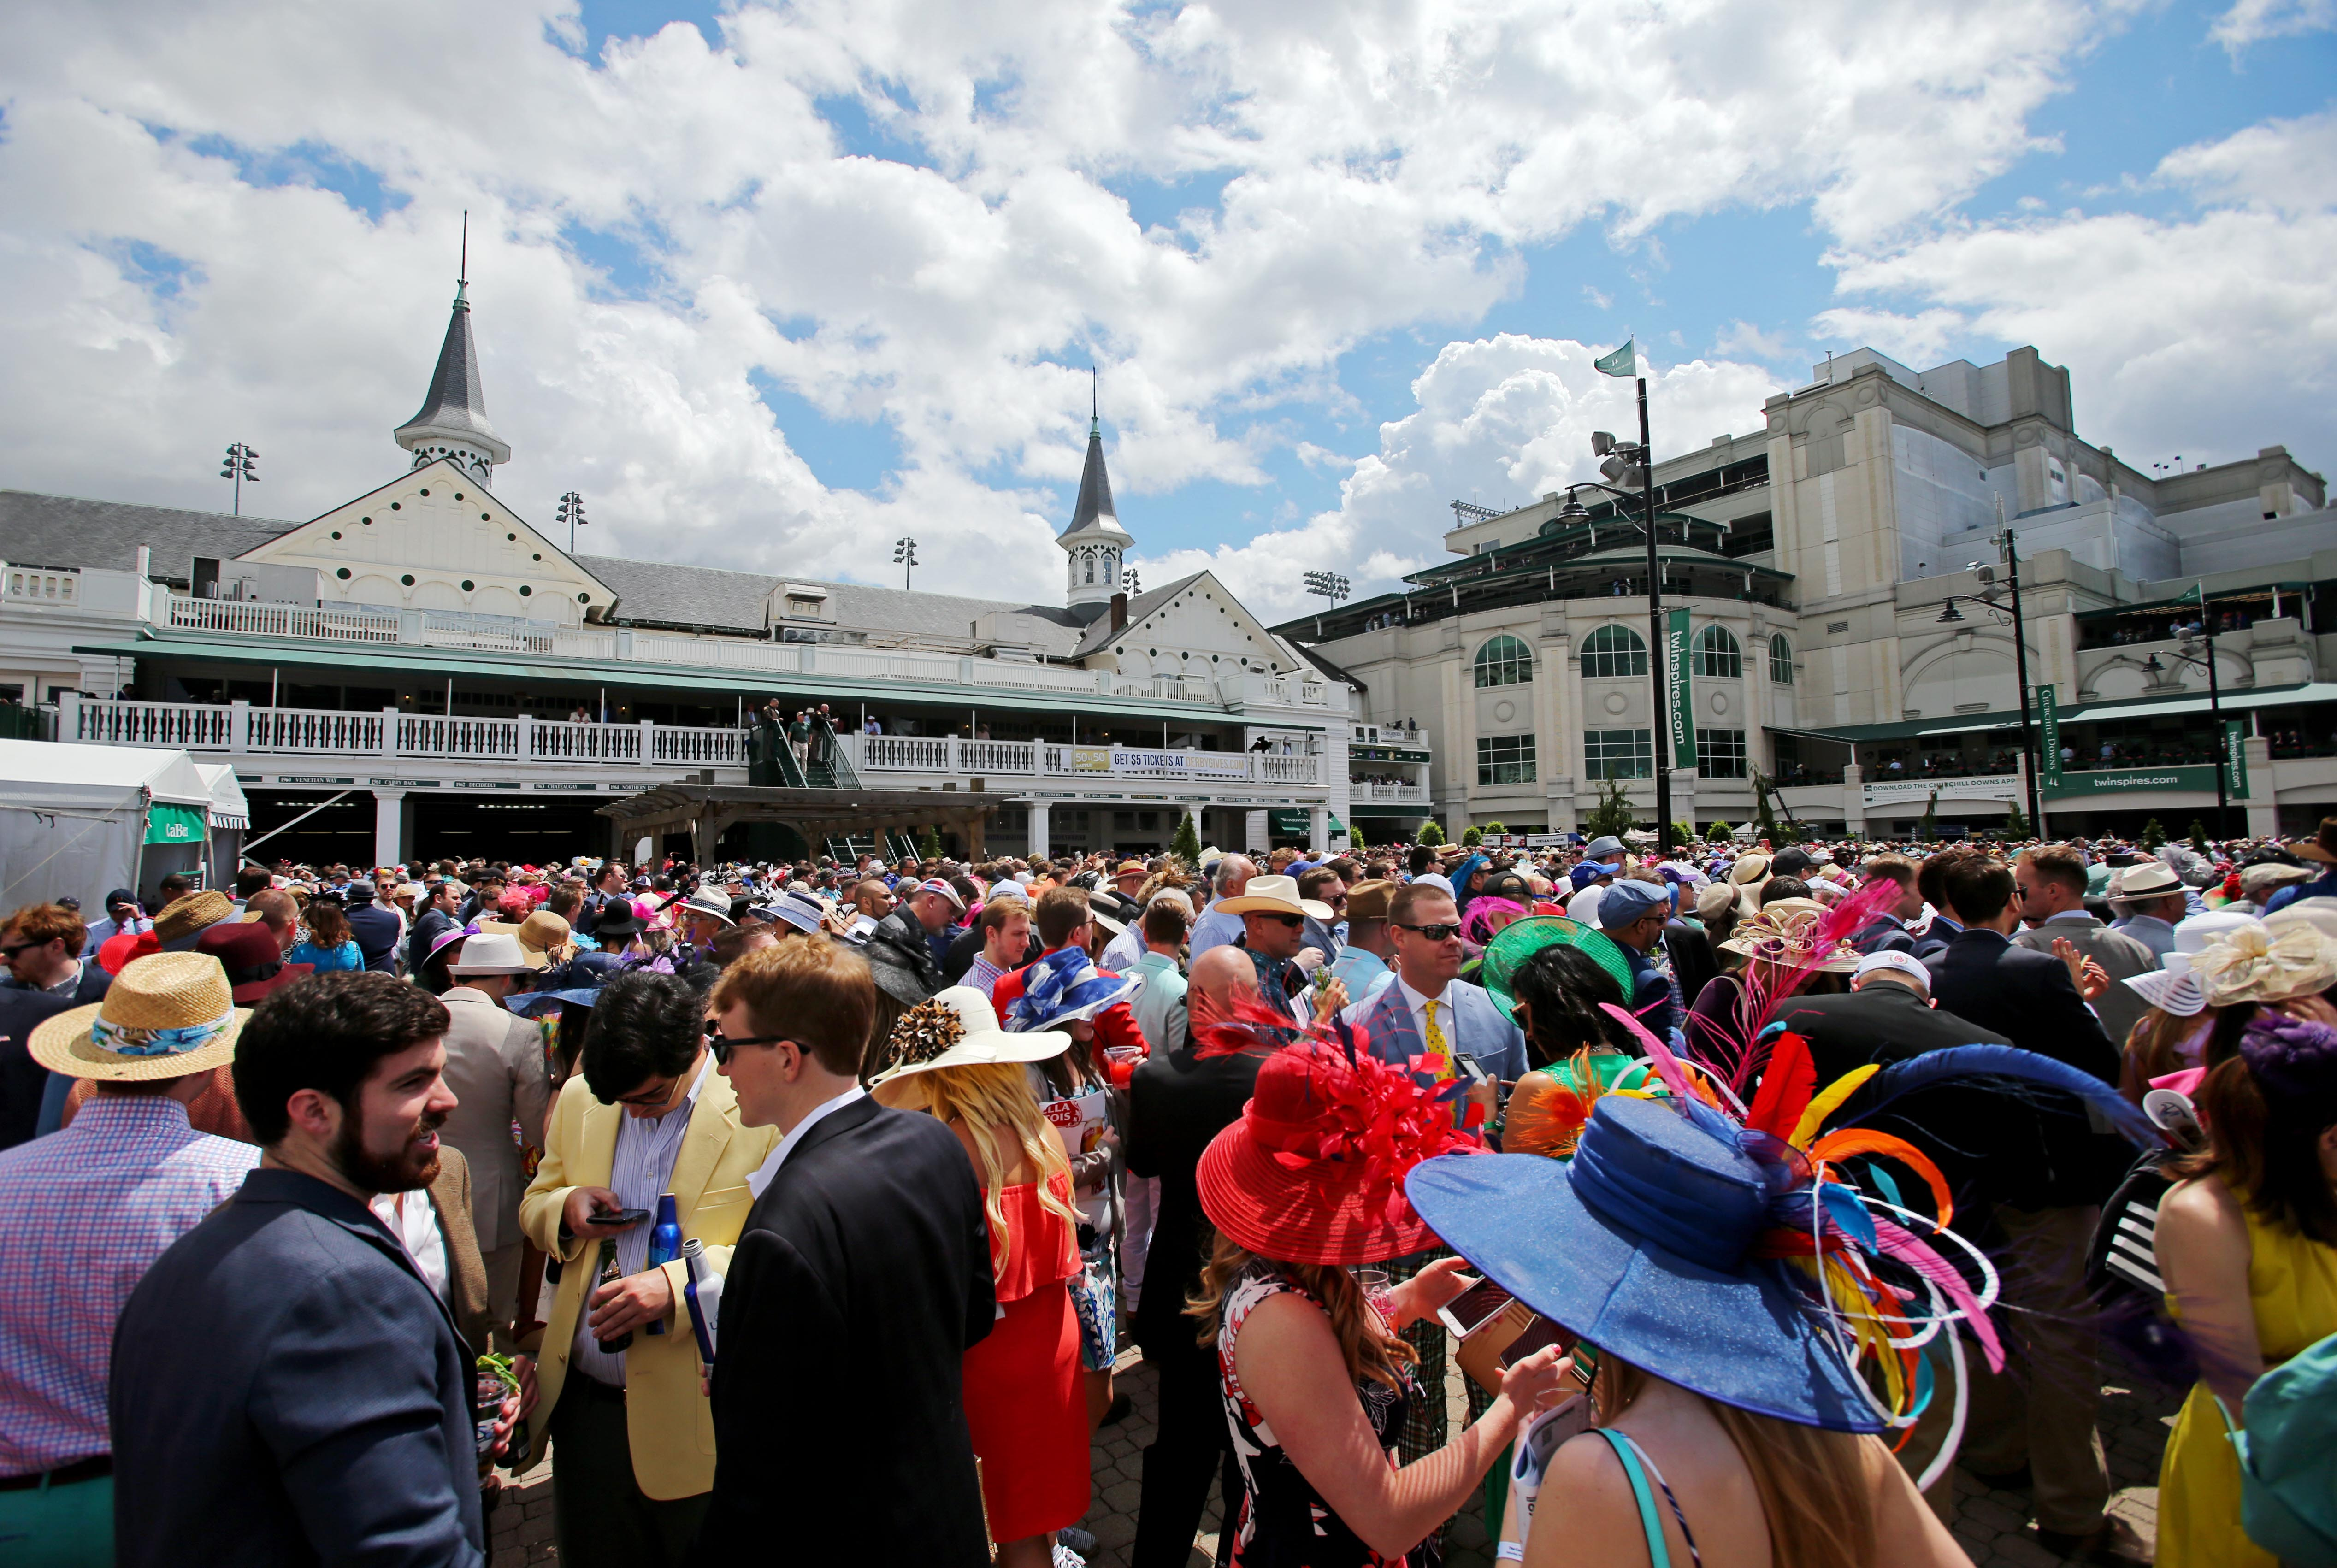 May 6, 2017; Louisville , KY, USA; A general view of fans in the paddock area before the 2017 Kentucky Derby at Churchill Downs. Mandatory Credit: Jerry Lai-USA TODAY Sports